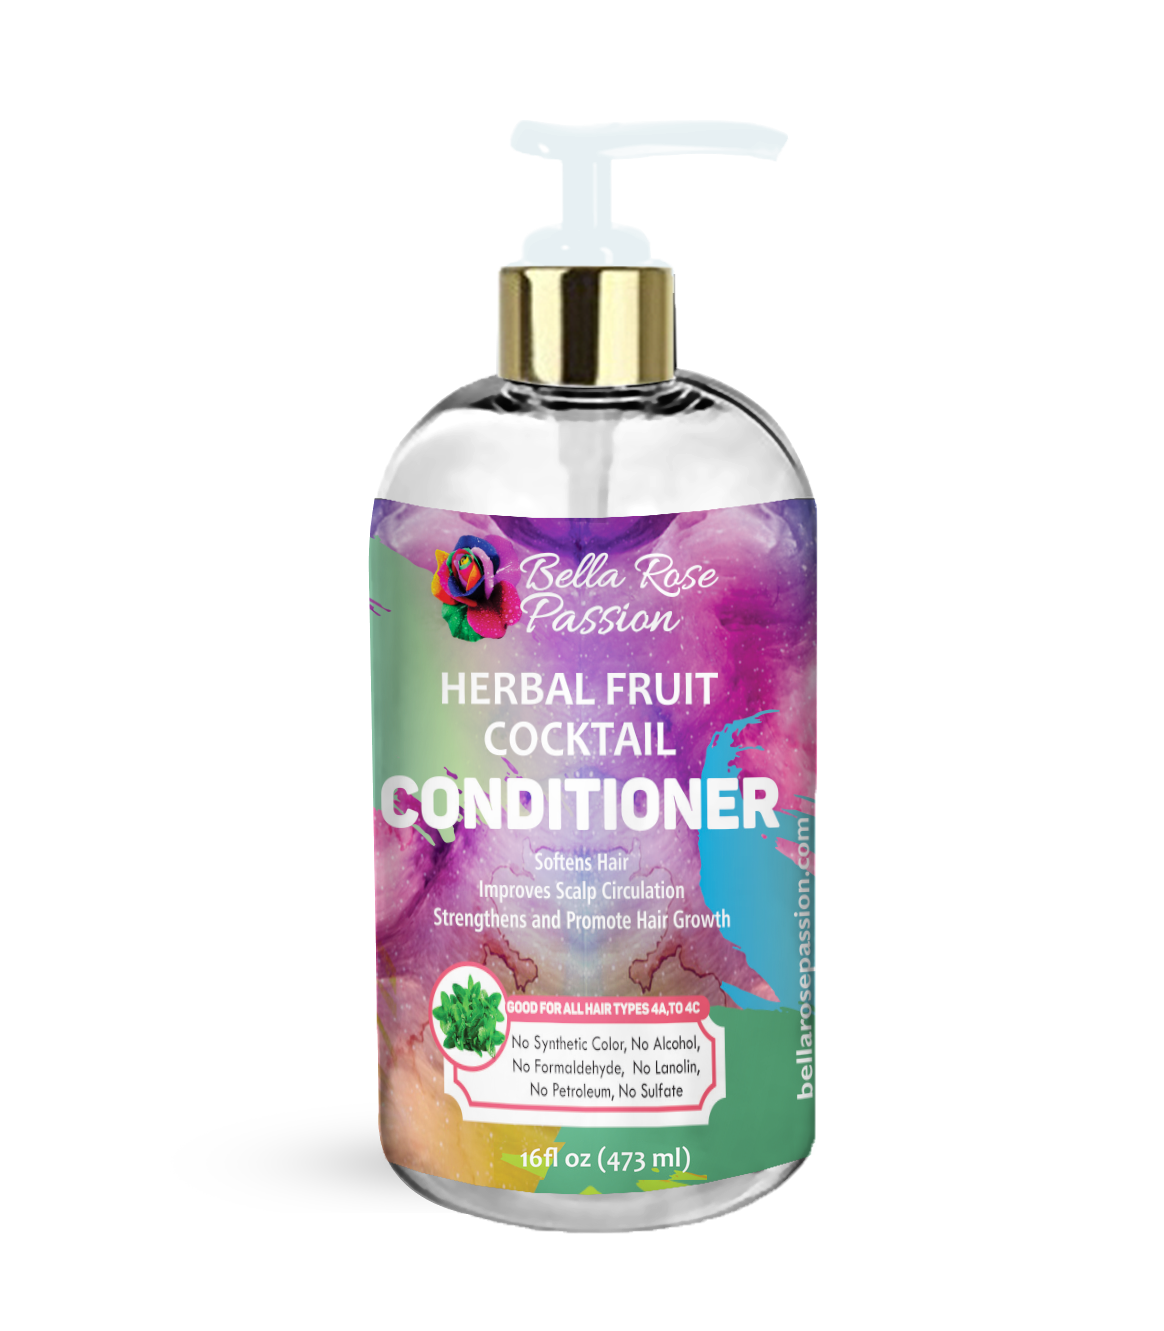 Herbal Fruit Cocktail Conditioner - Bella Rose Passion LLC